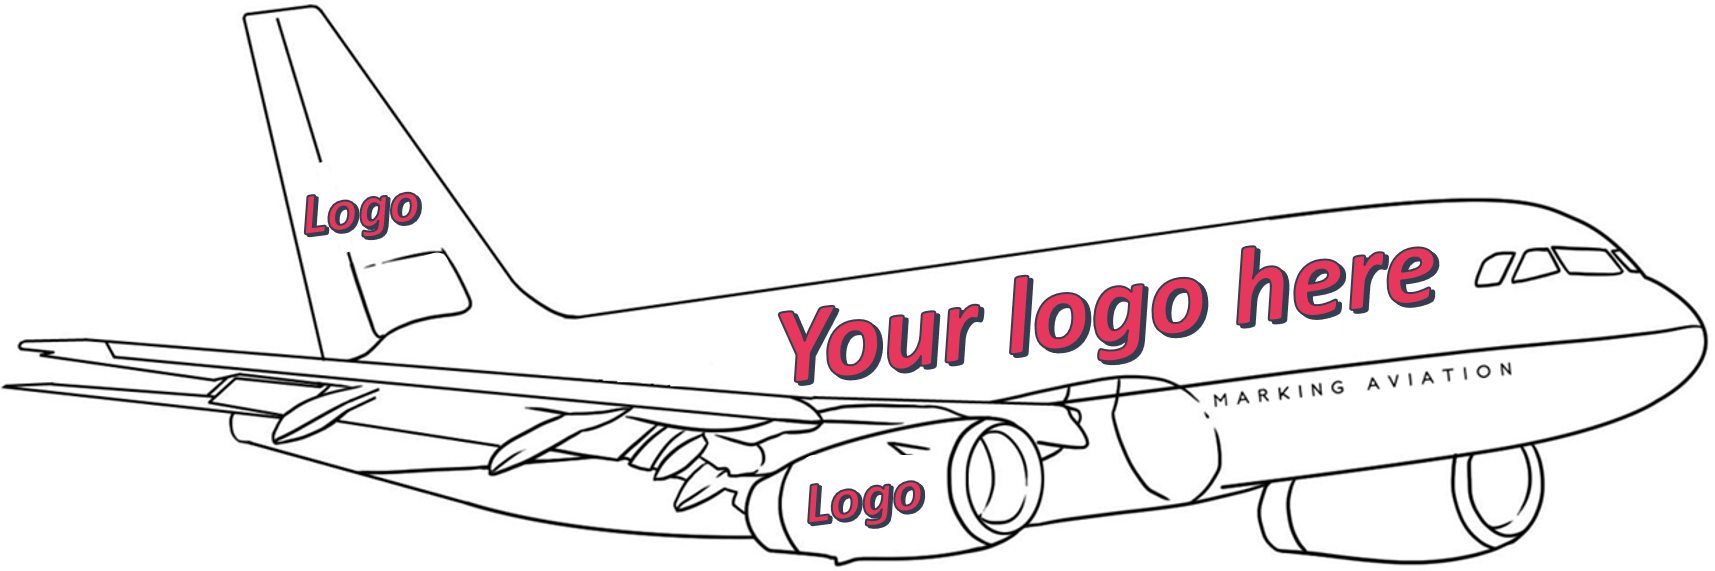 Aircraft branding with my logo and any brand